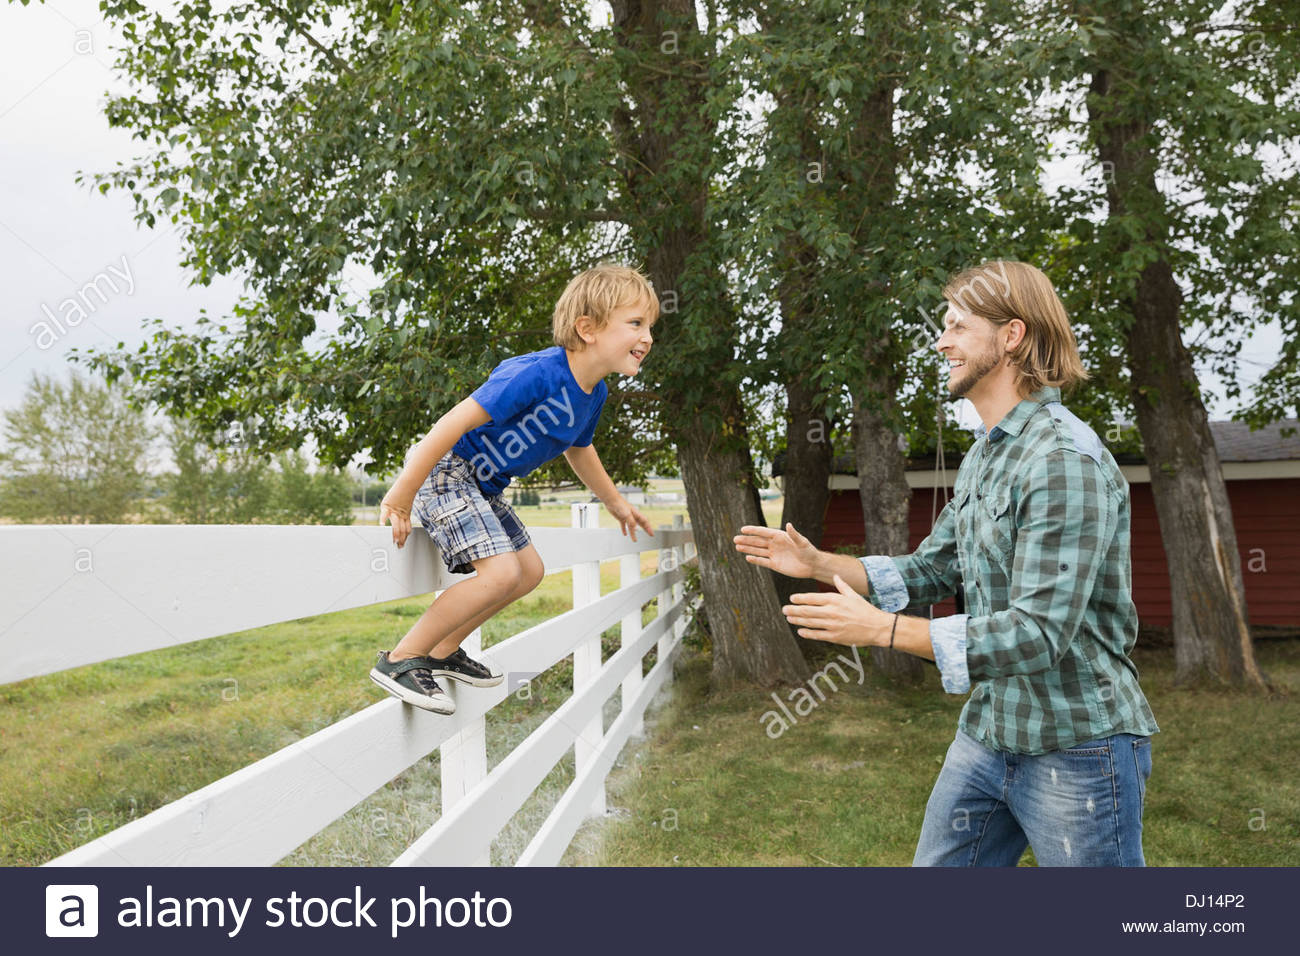 Playful son jumping off fence into fathers arms - Stock Image